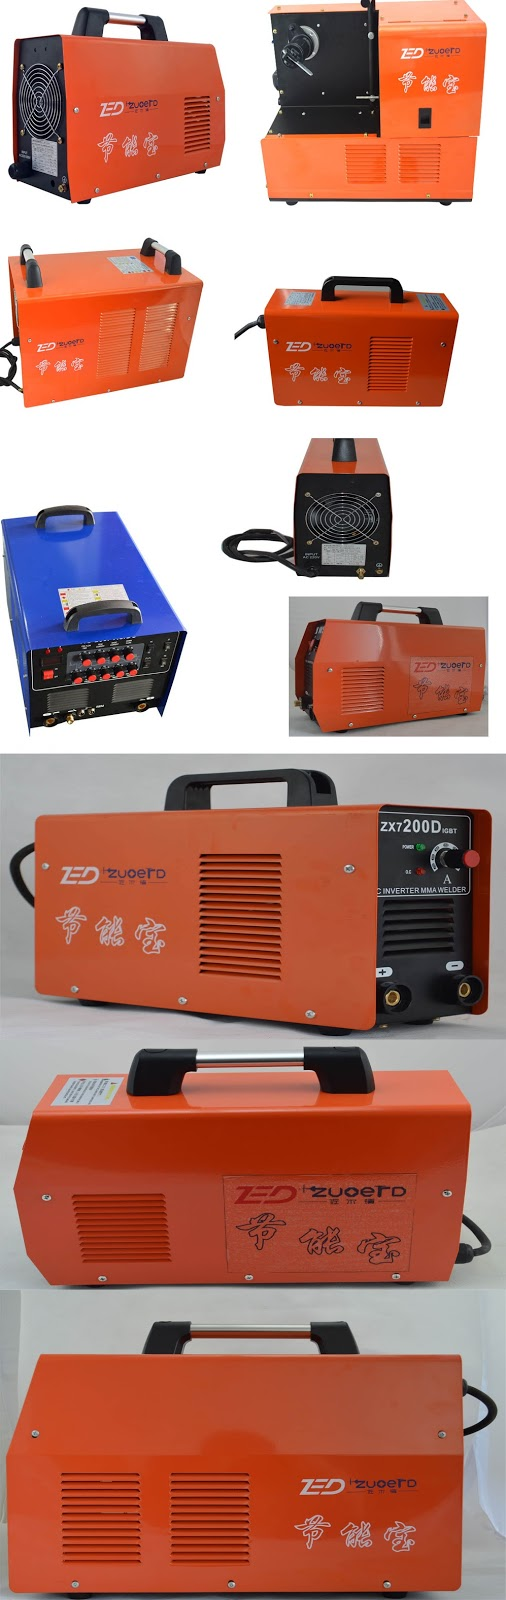 hight resolution of mos dc inverter tig welder igbt gas shielded welding machine mos inverter air plasma cutting machine mos dc inverter manual arc welding machine